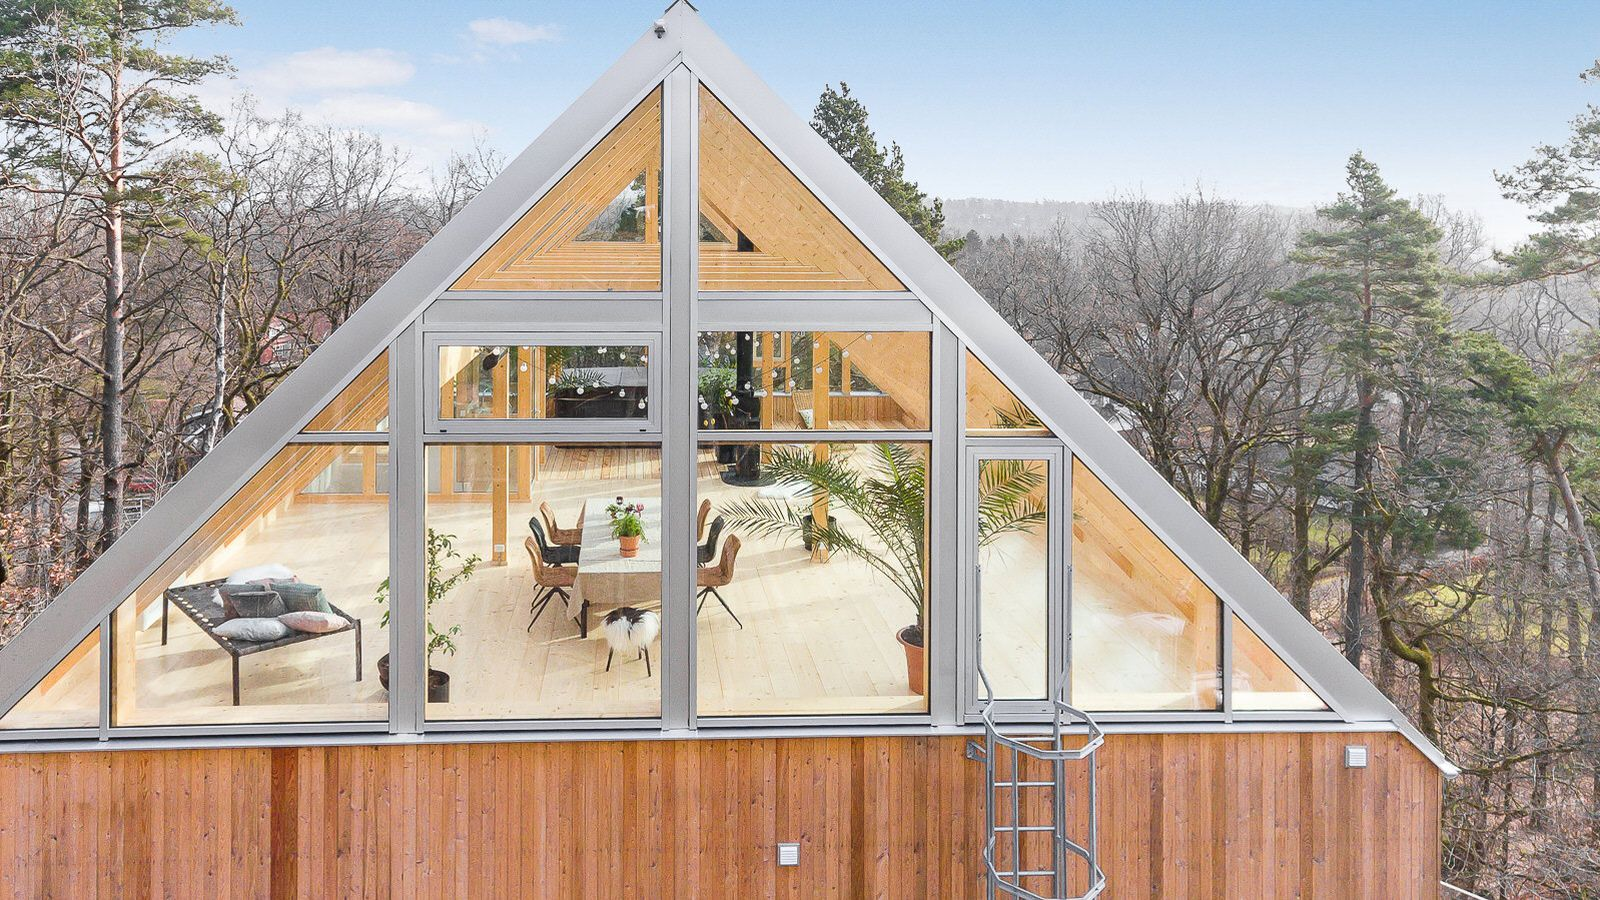 With a name like Villa Heaven what is left to say? This Swedish dream home has a glass roof with built-in third-floor living area offering 360-degree views of the surrounding wilderness and overhead views of the sky.